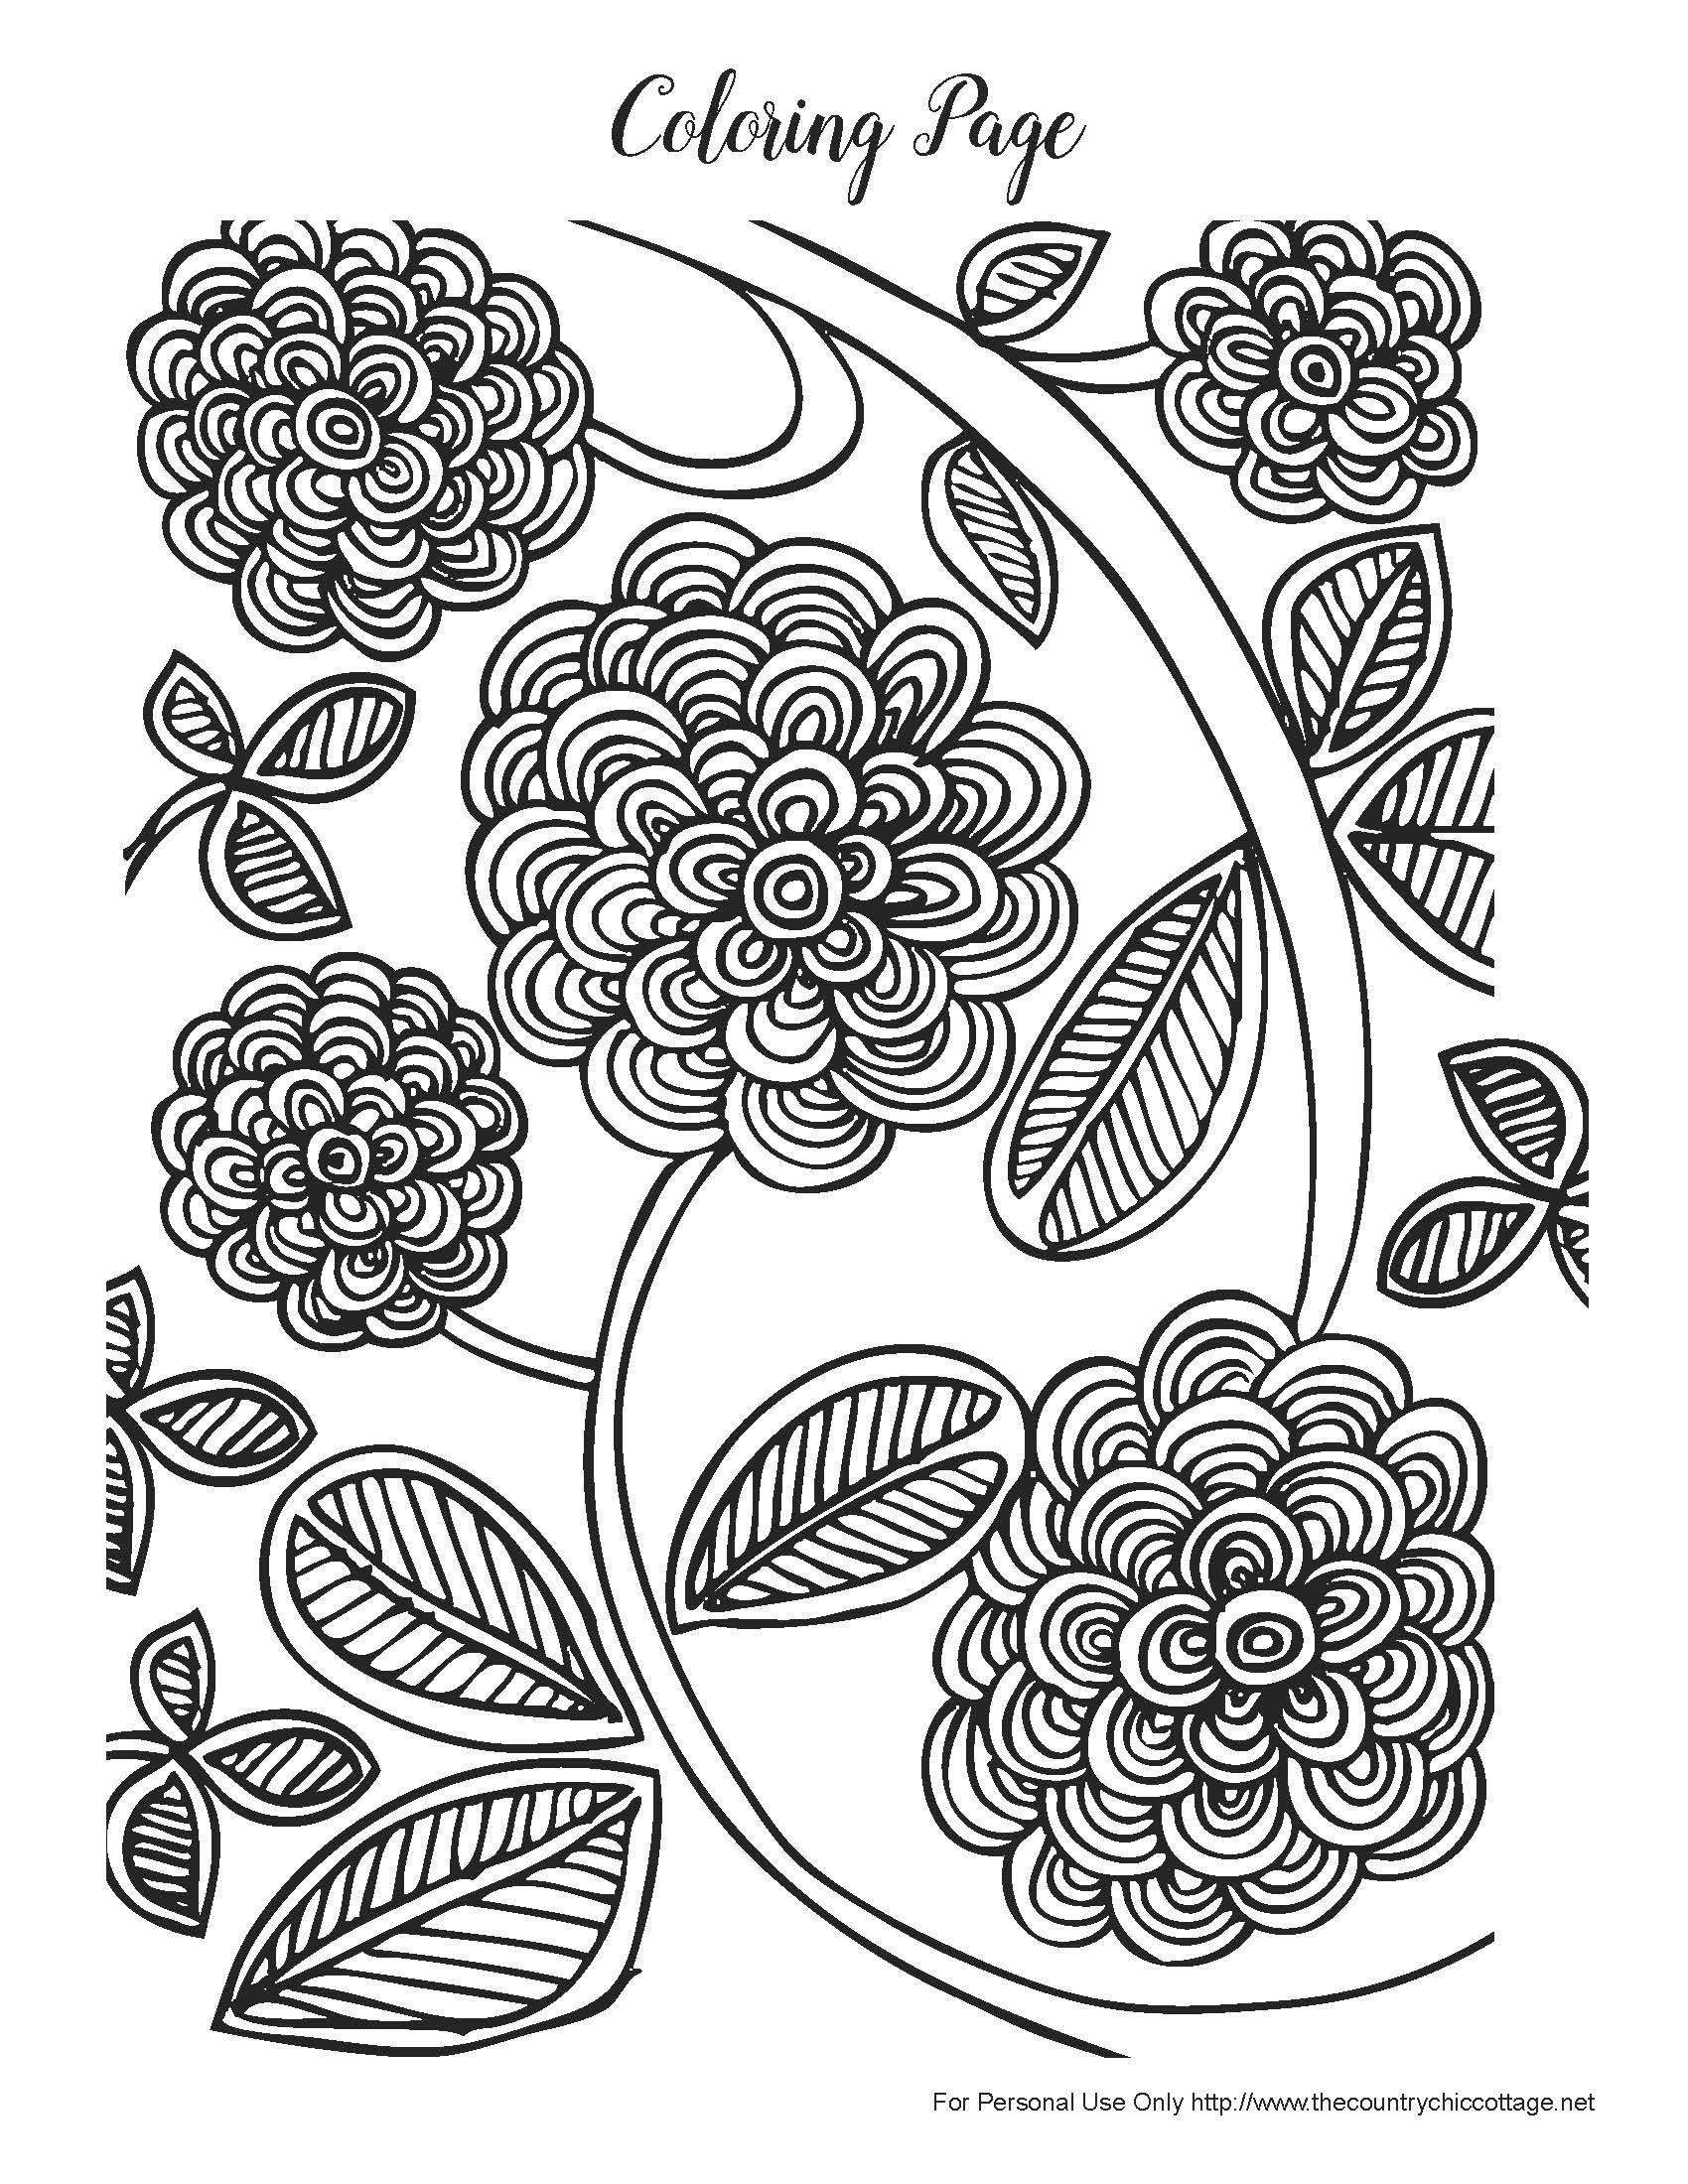 Spring coloring pages for adults free - Download These Free Spring Coloring Pages For Adults Today Color Pretty Flowers With Intricate Designs